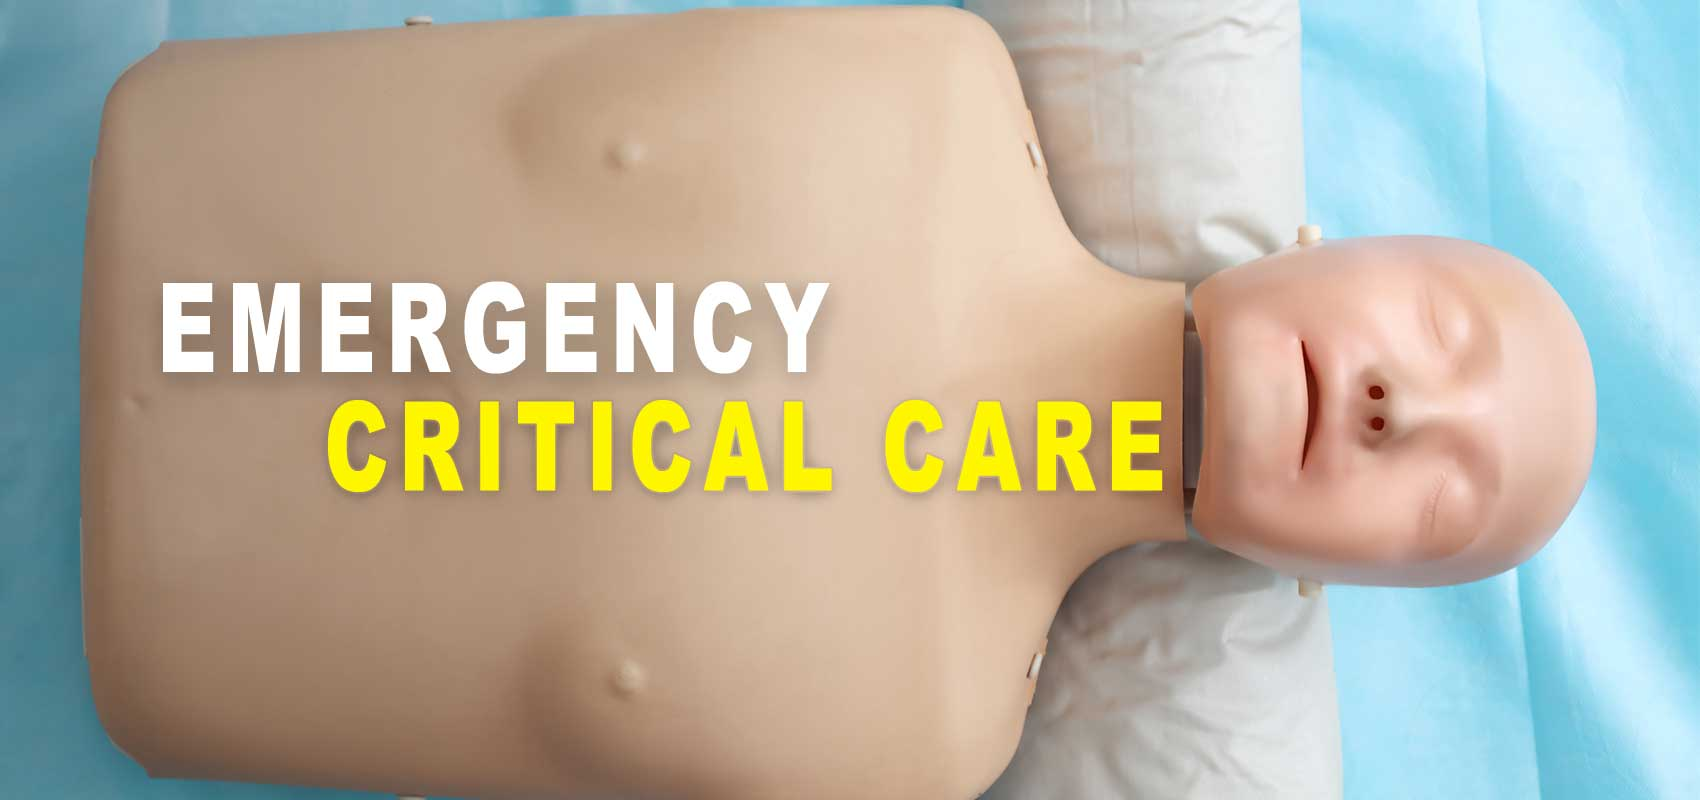 Emergency and Critical Care